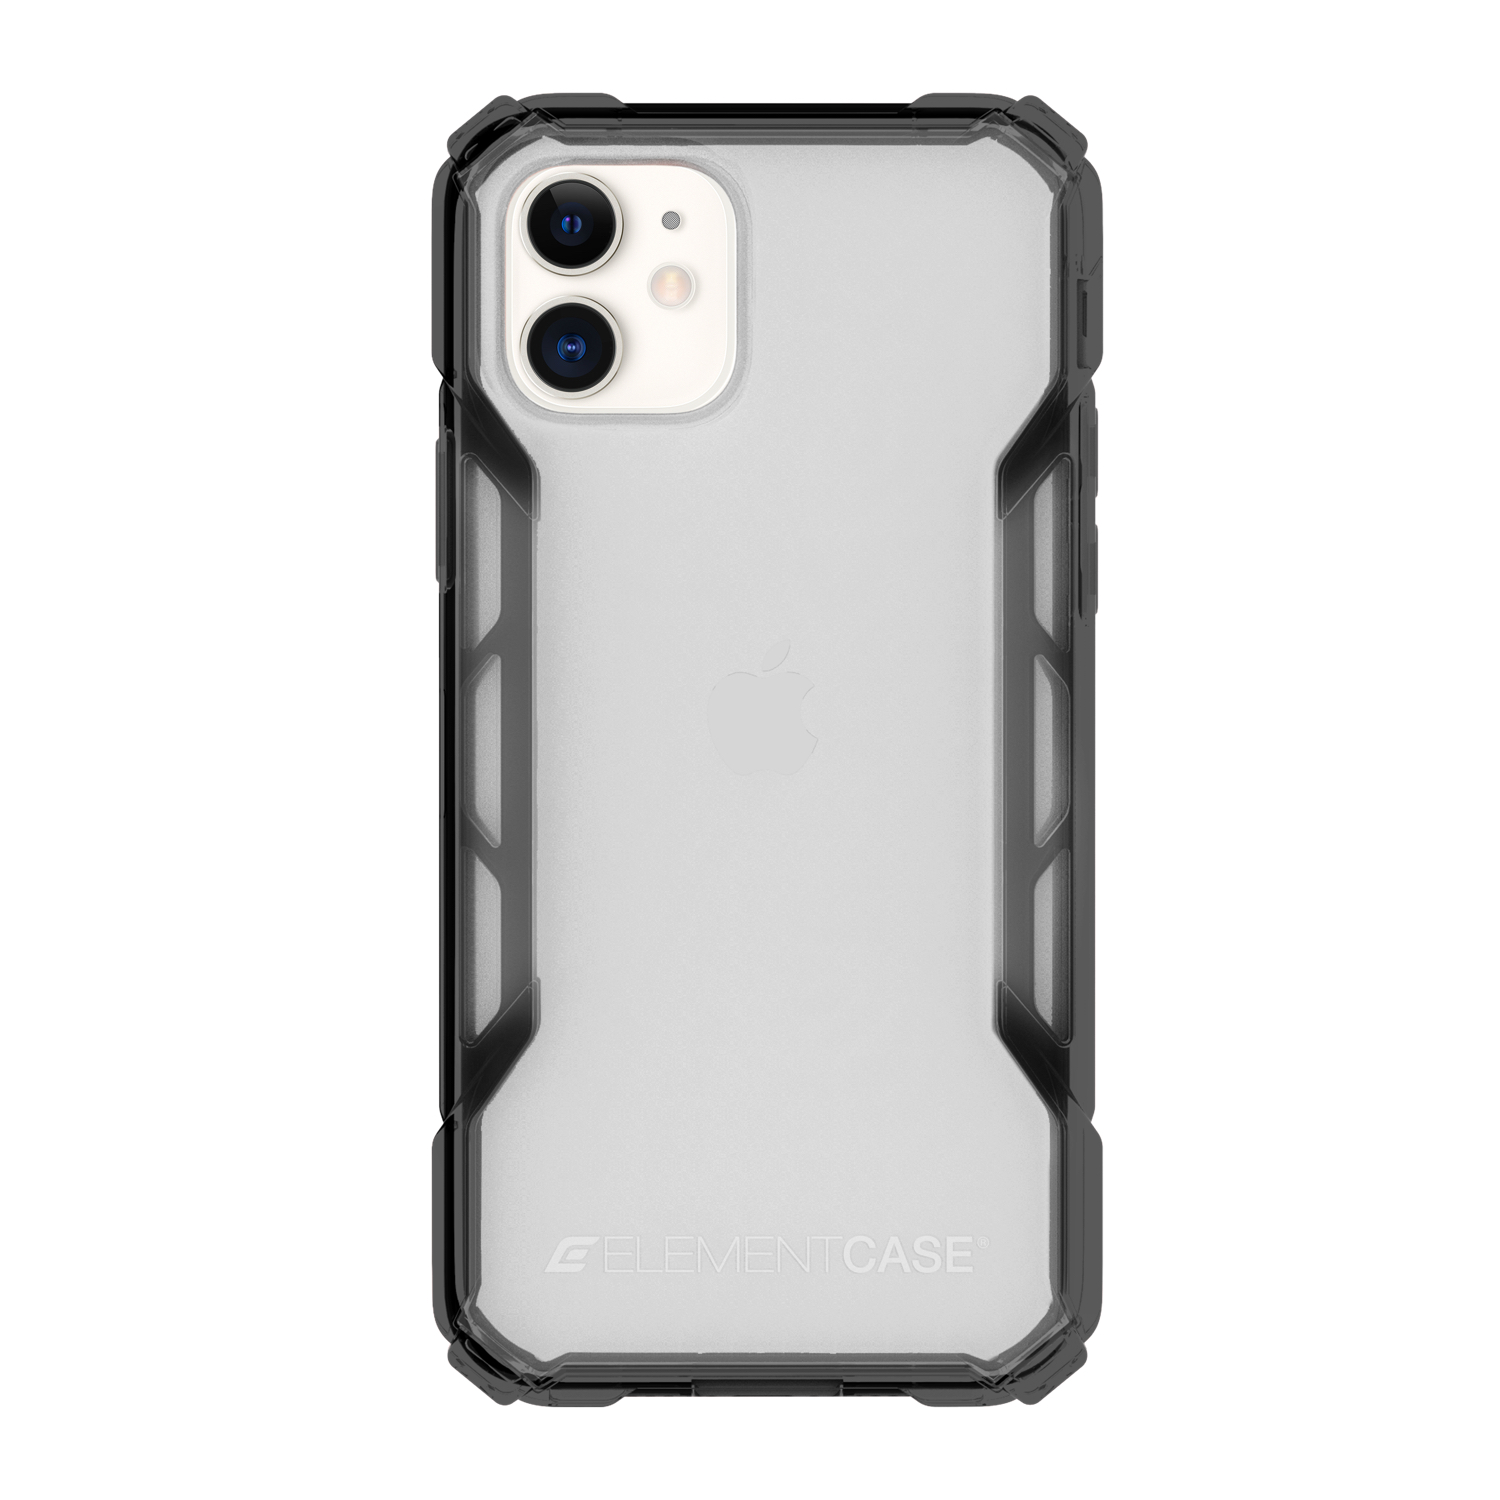 Element Case Rally Series Cover for iPhone 11